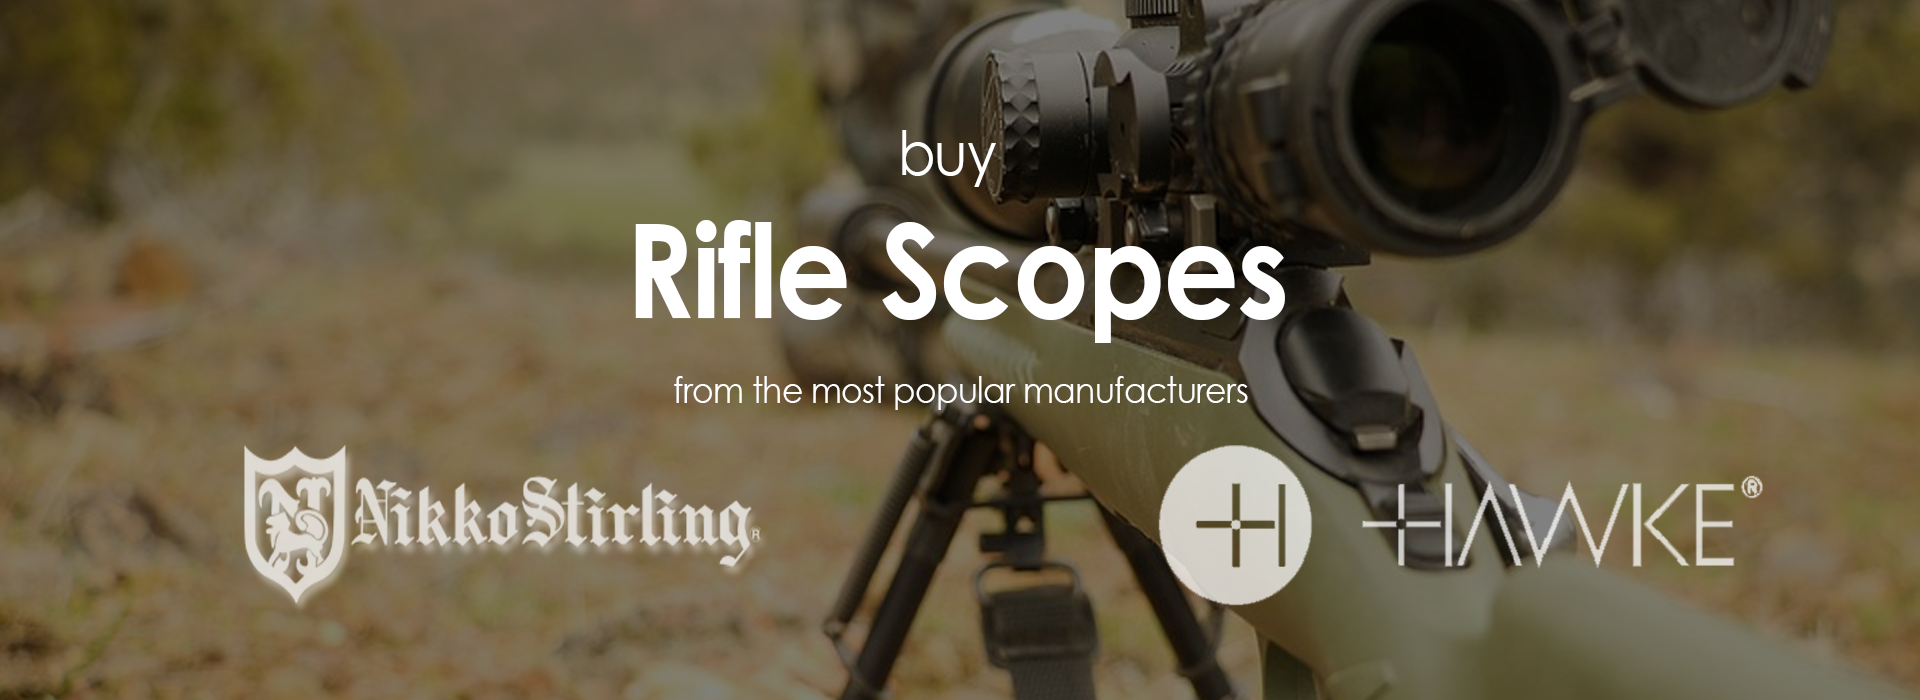 rifle scopes at tactical scope